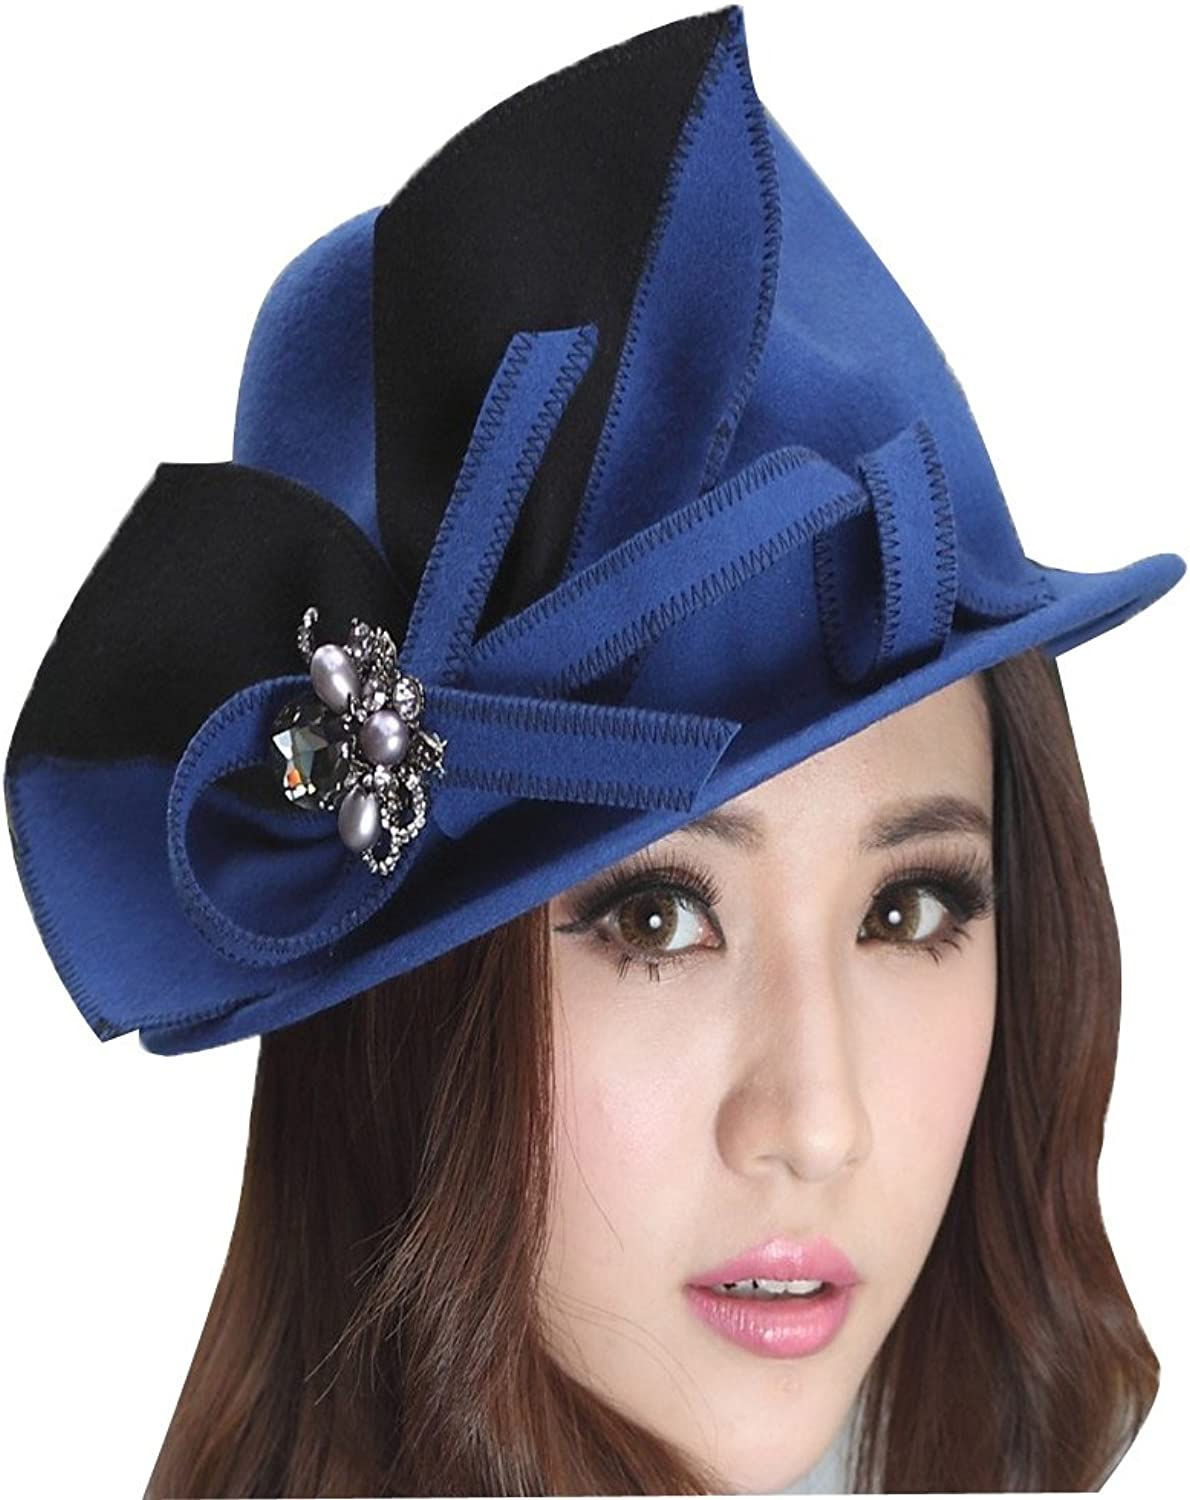 June's Young Women Hats Winter Hat 100% Wool Embroidery Brim Stones